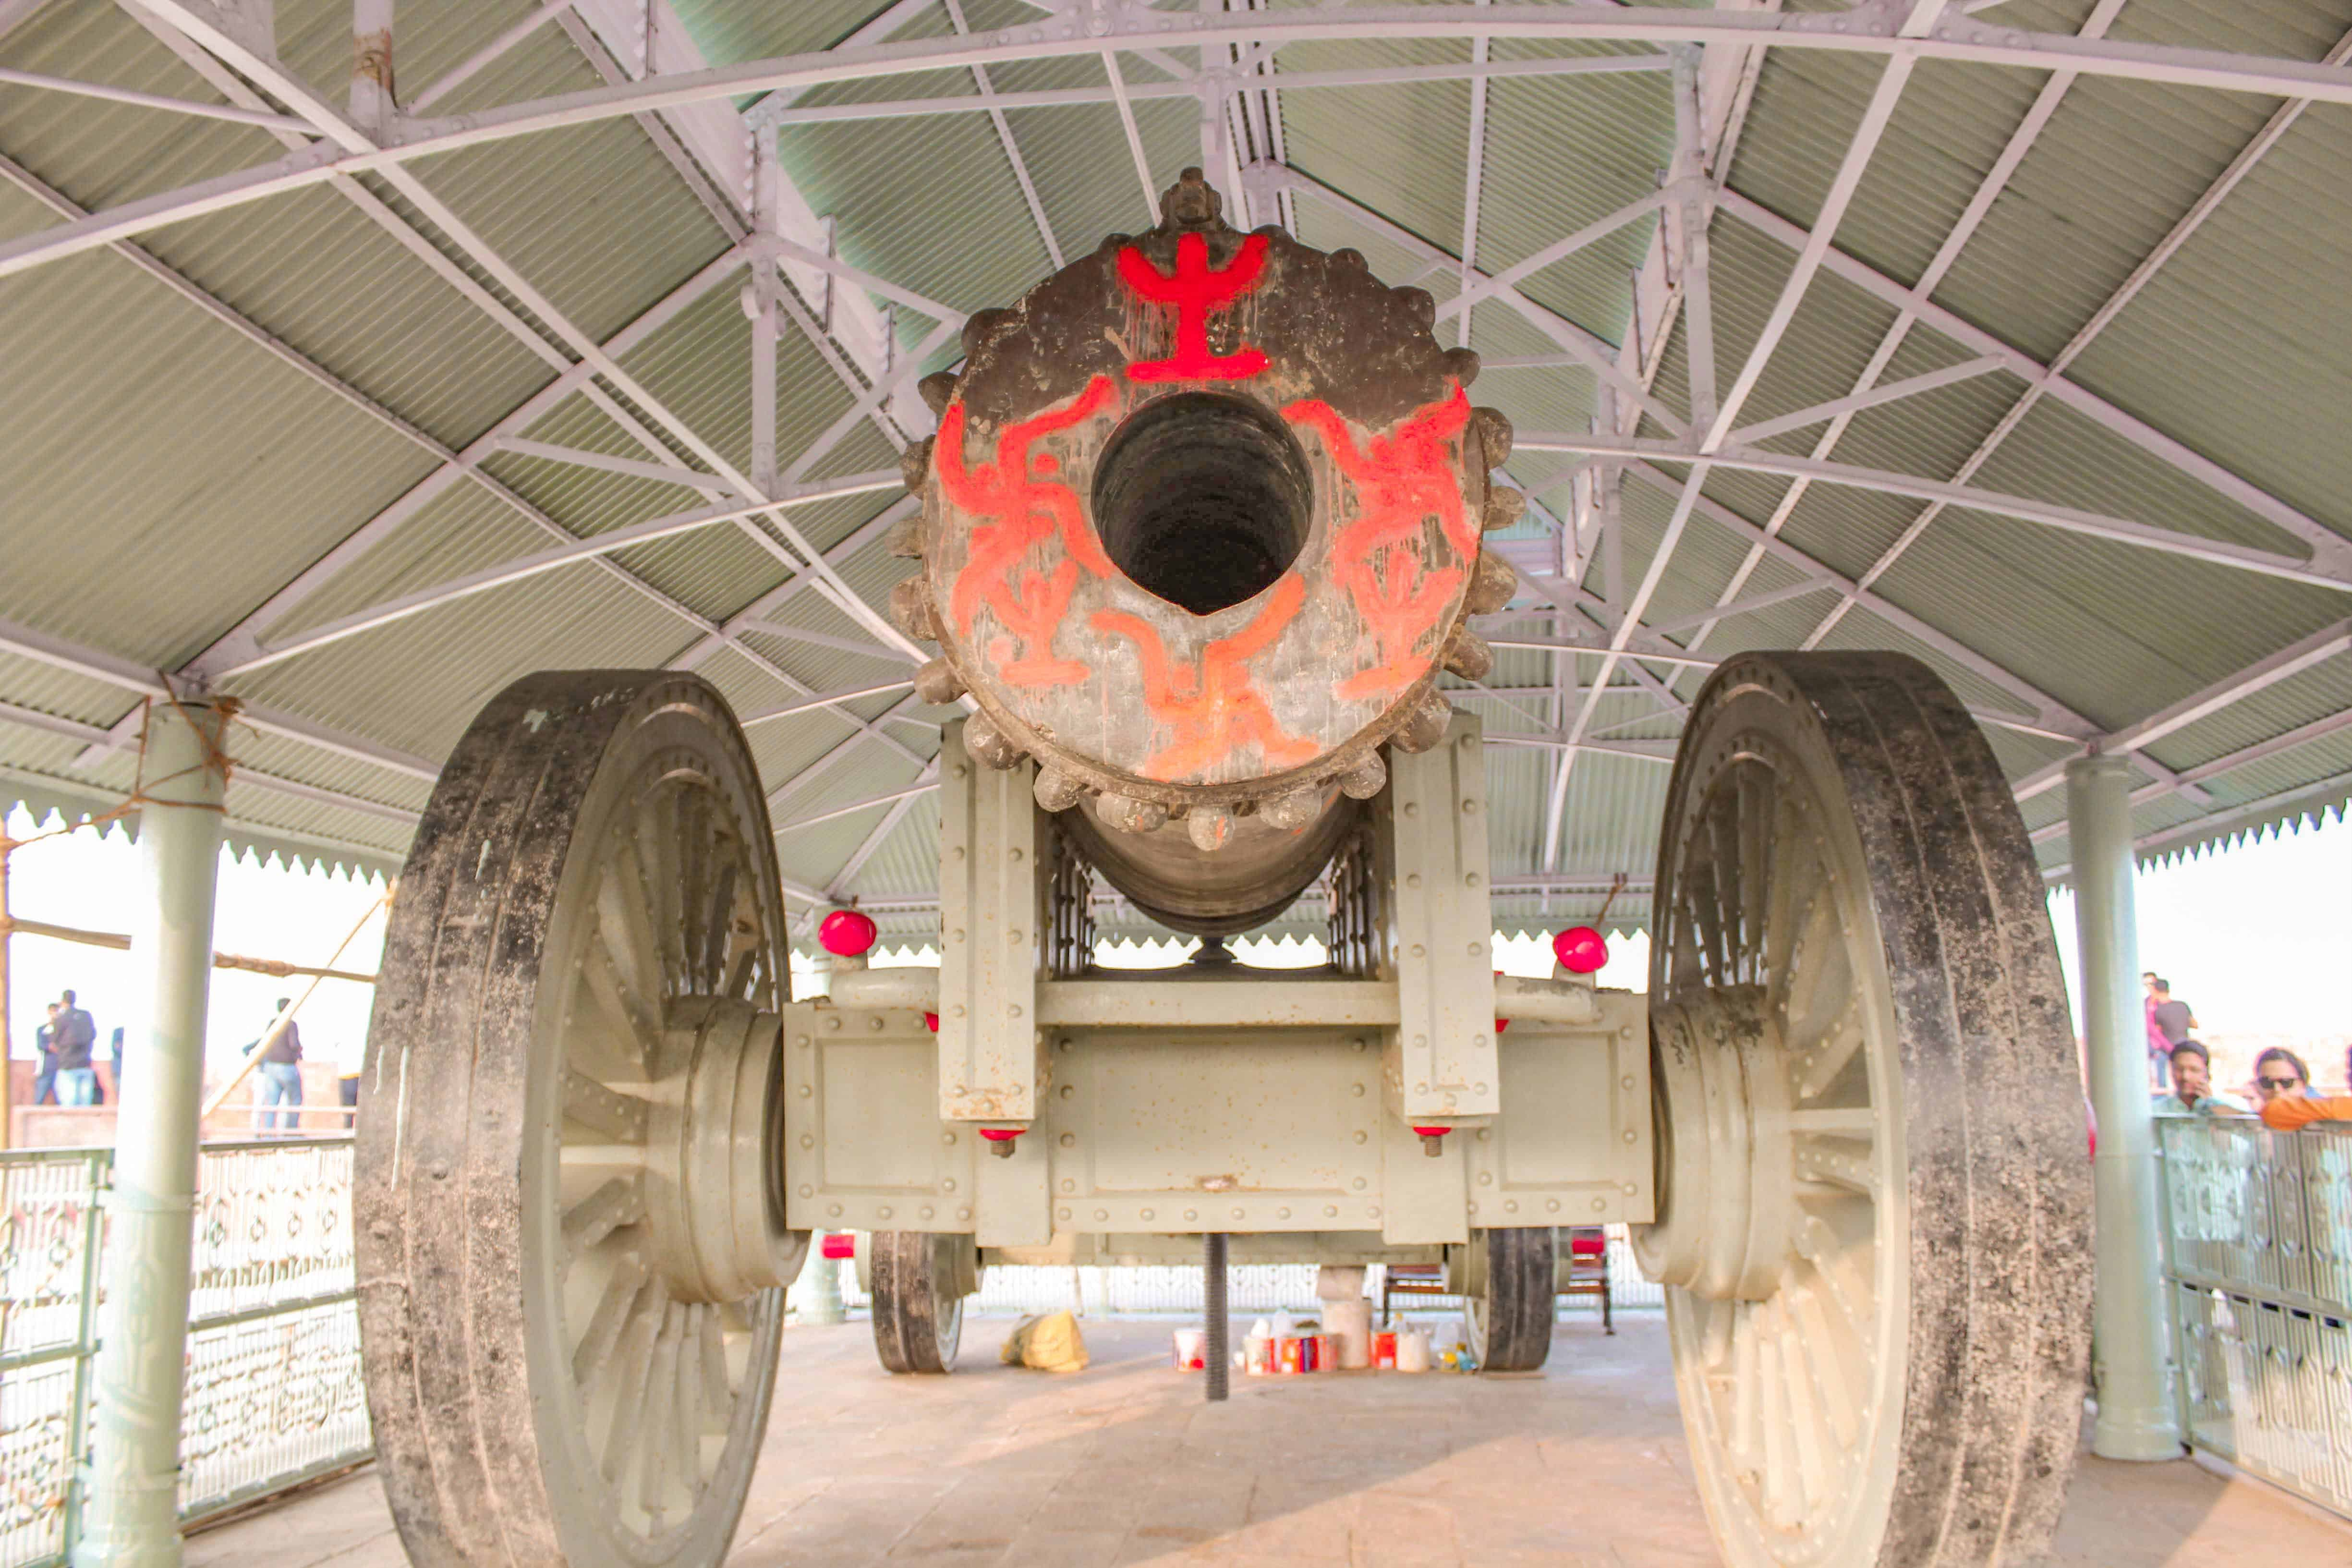 Jaivana-World's largest cannon on wheels of the Early Modern Era